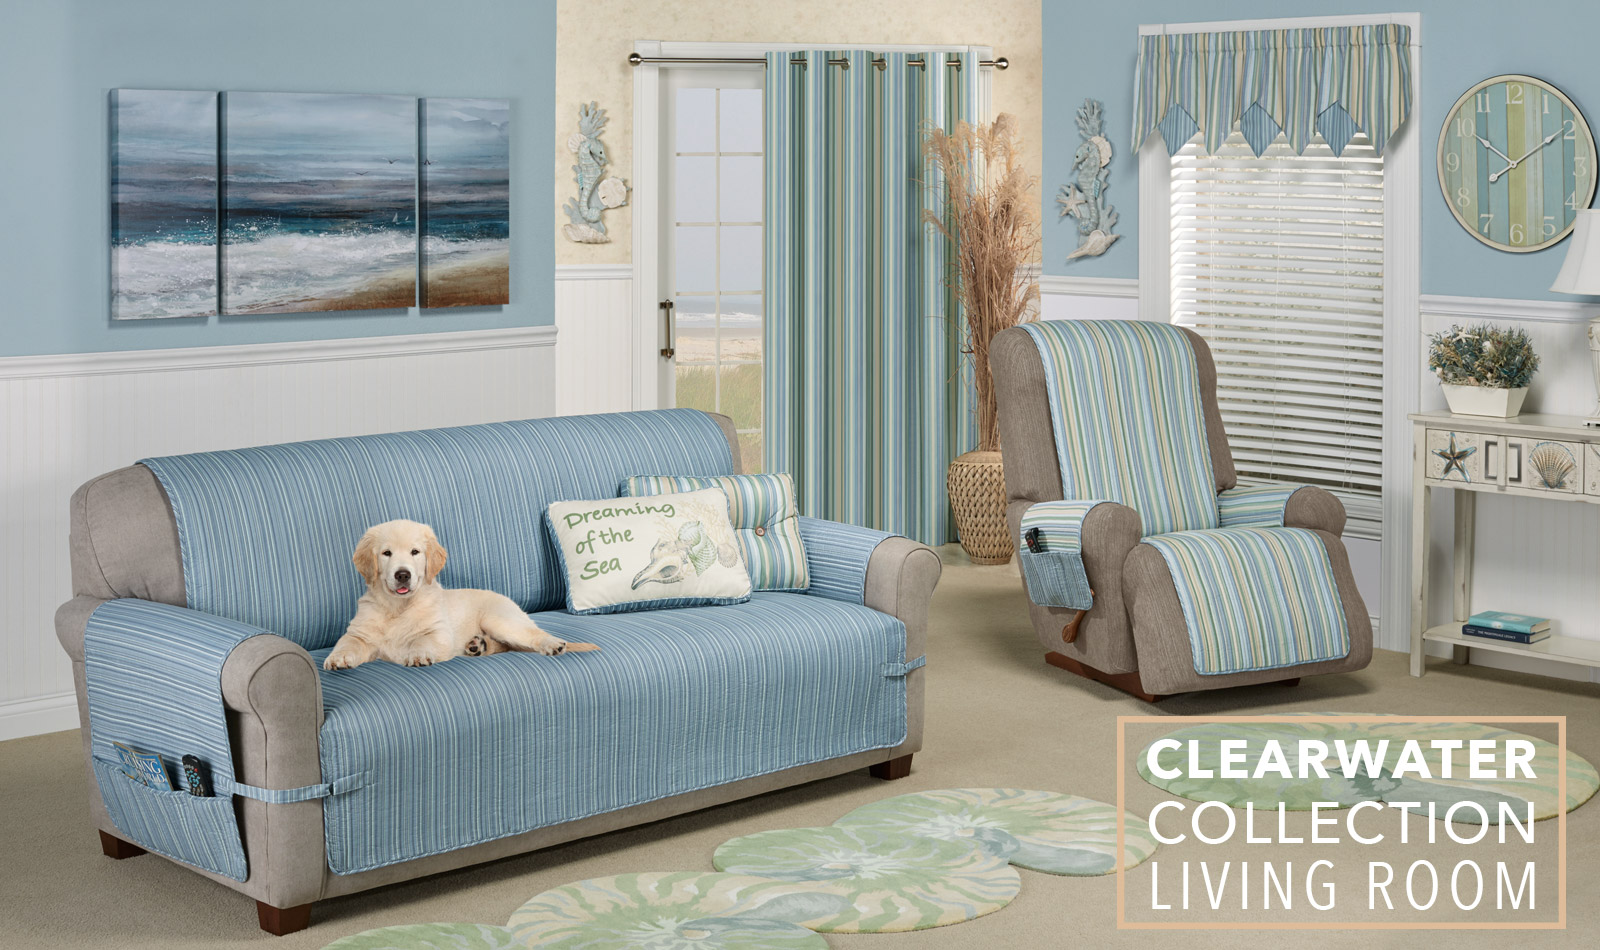 Get The Look - Clearwater Coastal Living Room - Furniture Covers